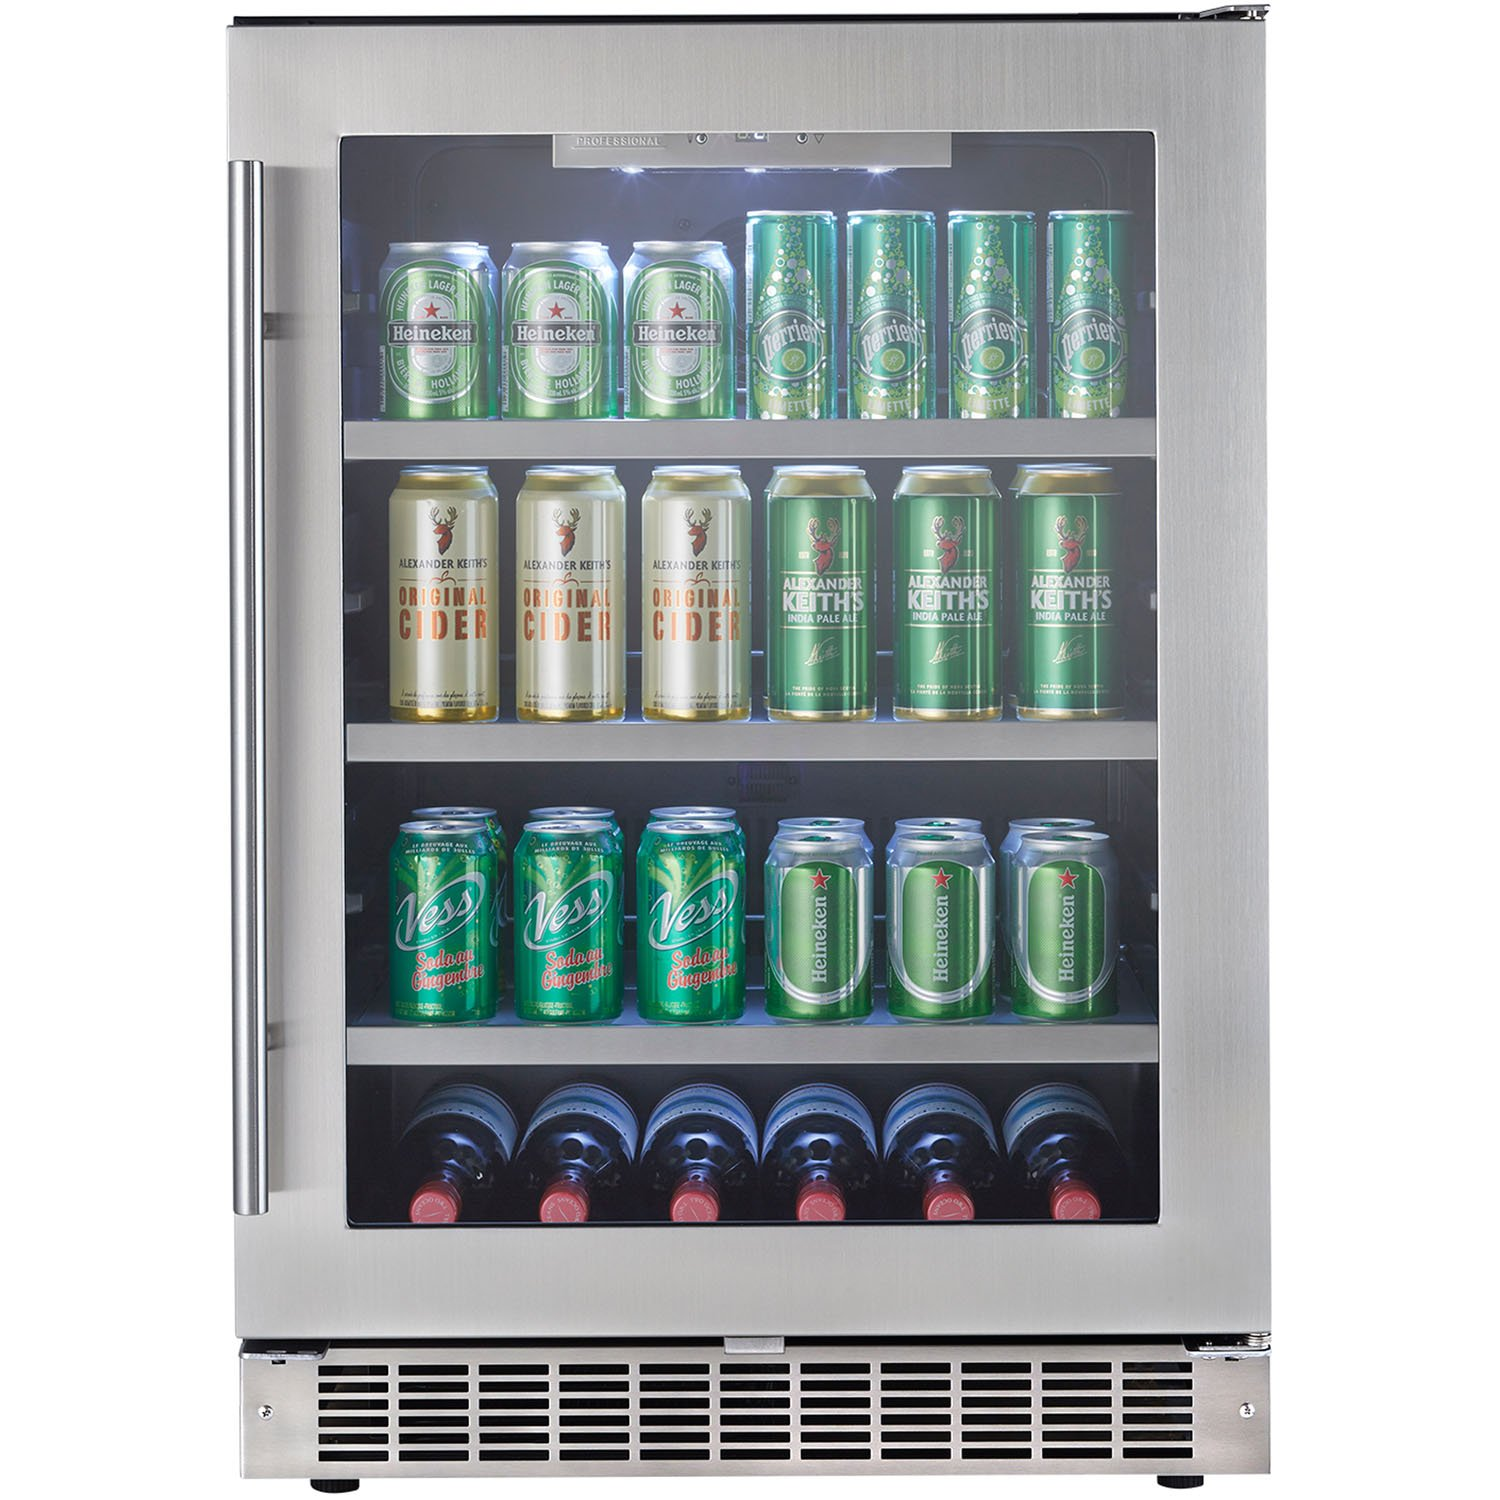 amazoncom danby silhouette builtin beverage center 56 cubic feet steelglass appliances - Beverage Center